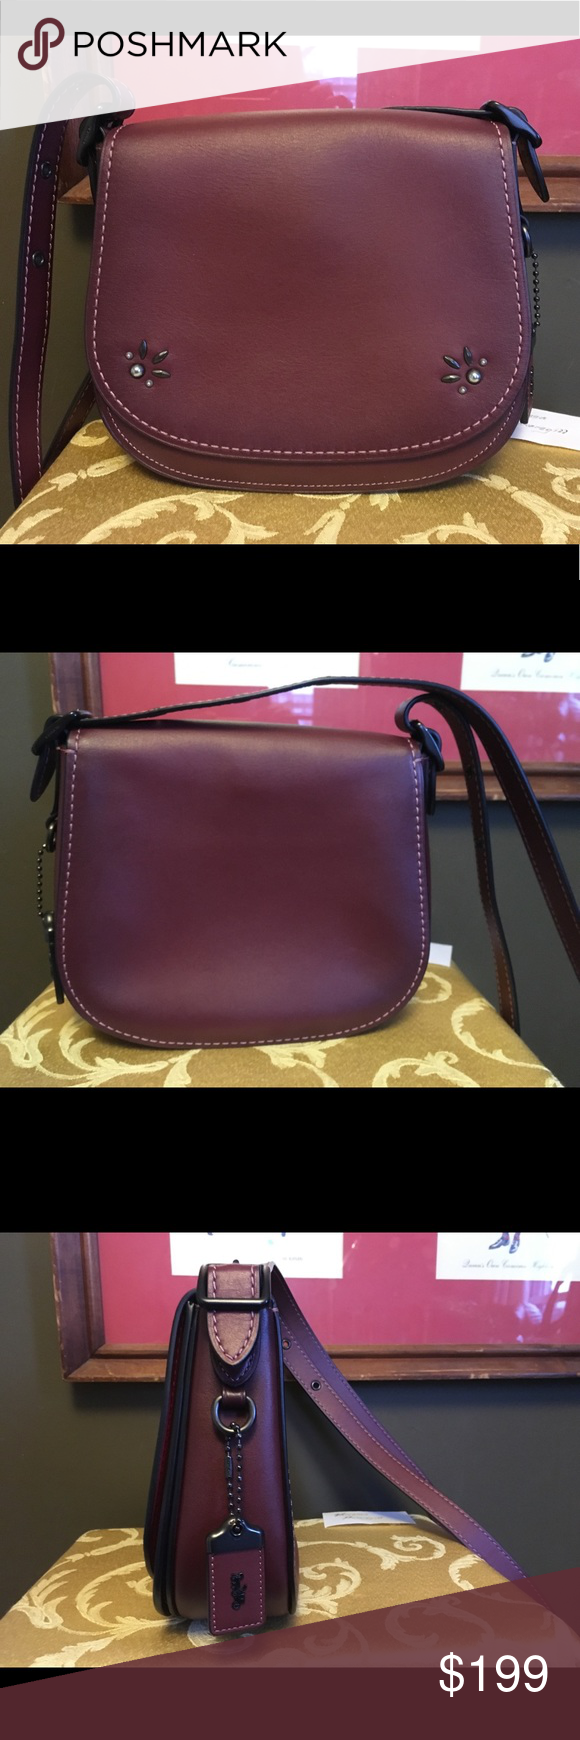 037421fbe Coach 1941 Saddle 23 in Bordeaux BORDEAUX/BLACK COPPER Glovetanned leather  Inside zip and open pockets Flap closure, leather lining Fo… | My Posh Picks